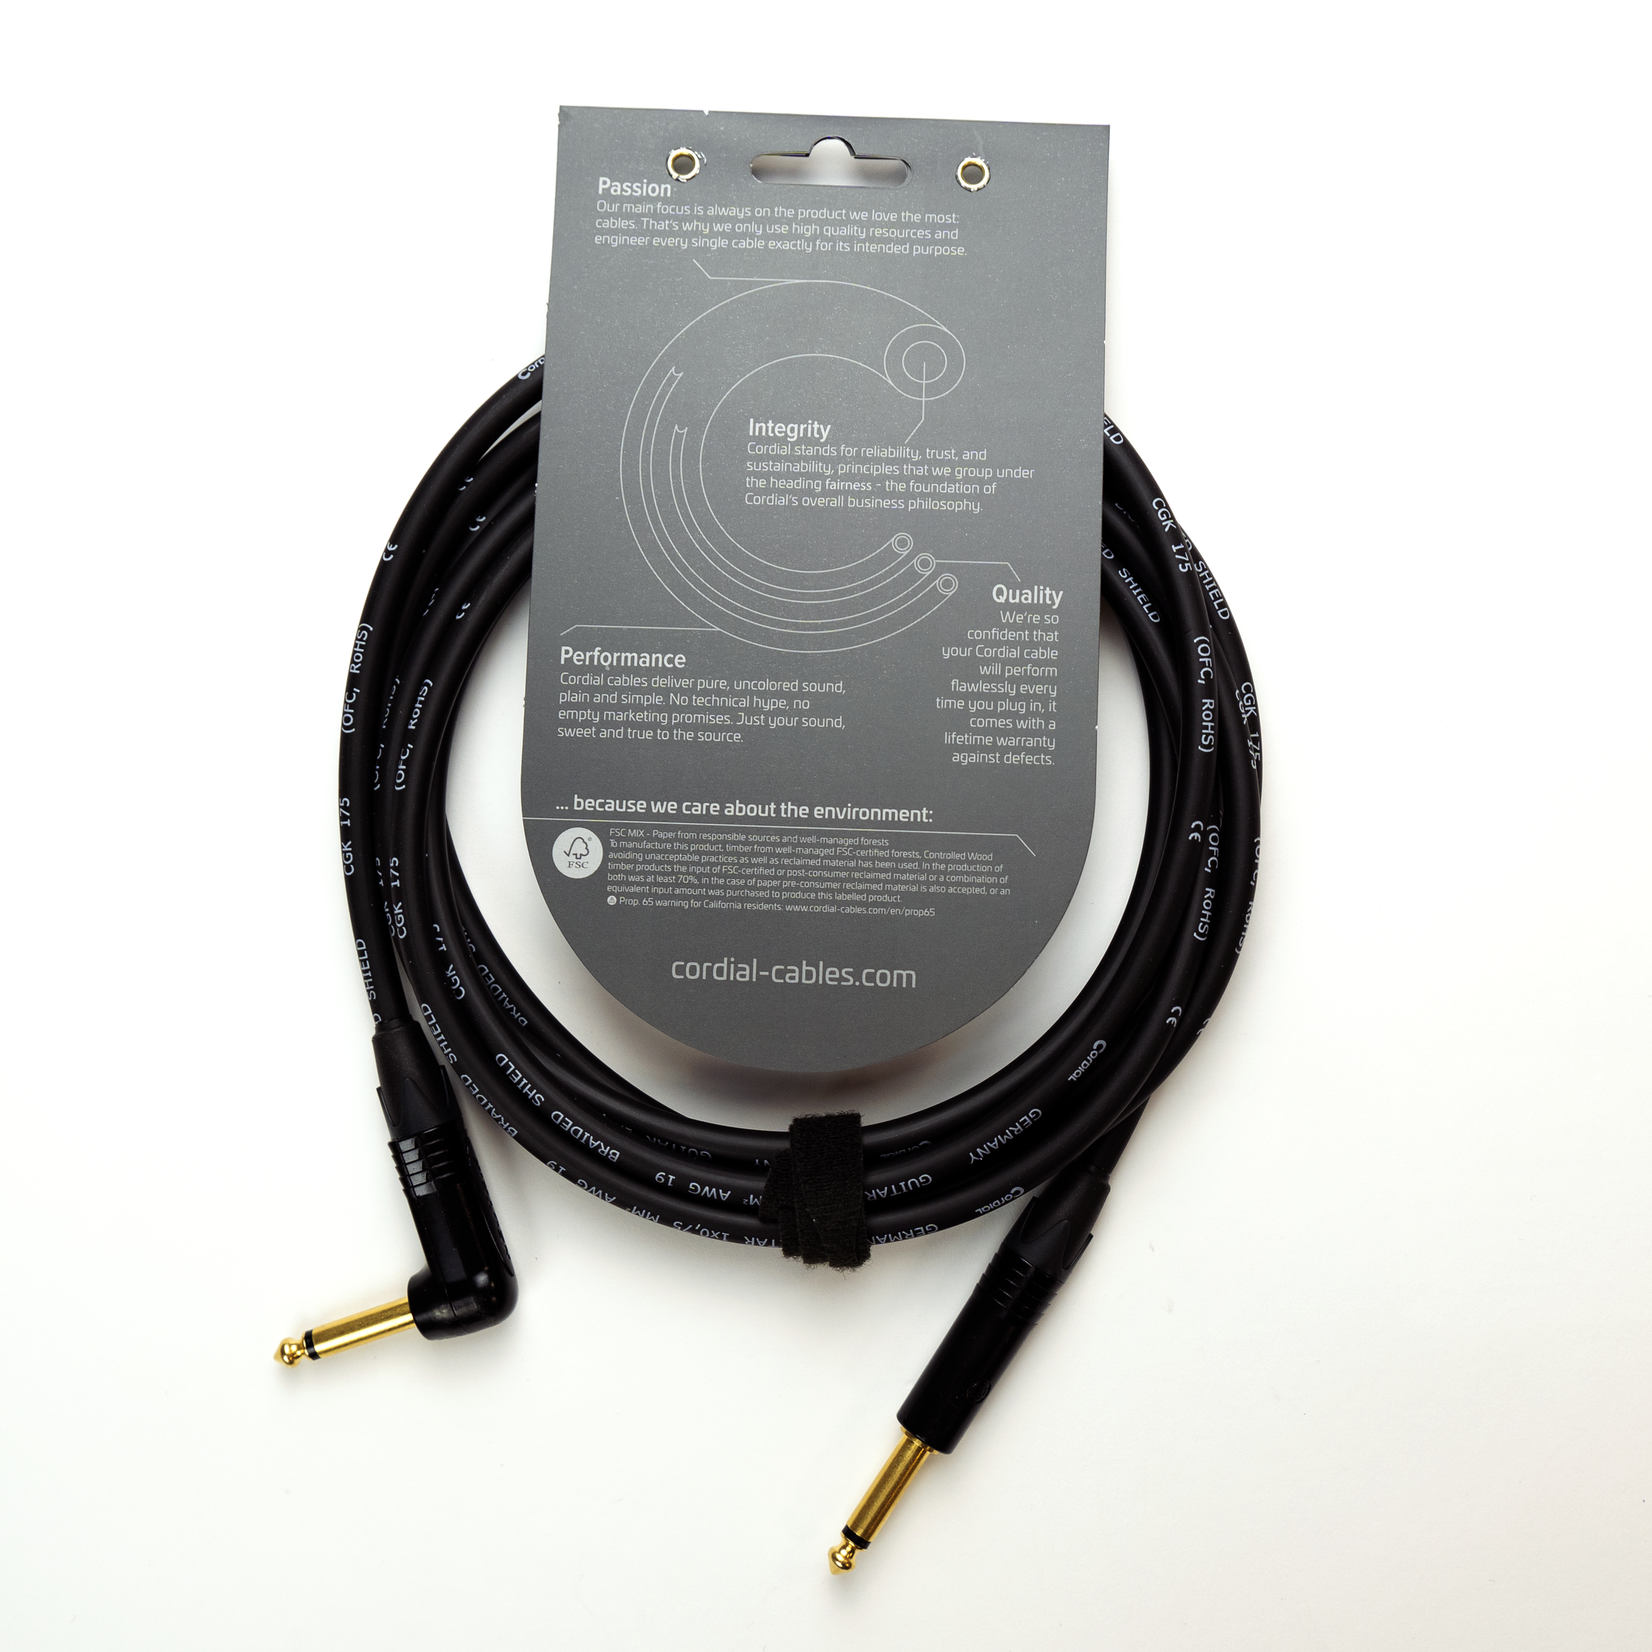 """Cordial Cables Cordial Cables Premium Instrument High-Copper Cable, Peak Series - 1/4"""" Straight to 1/4"""" Right Angle Phone Plugs (10-Foot Black Cable)"""